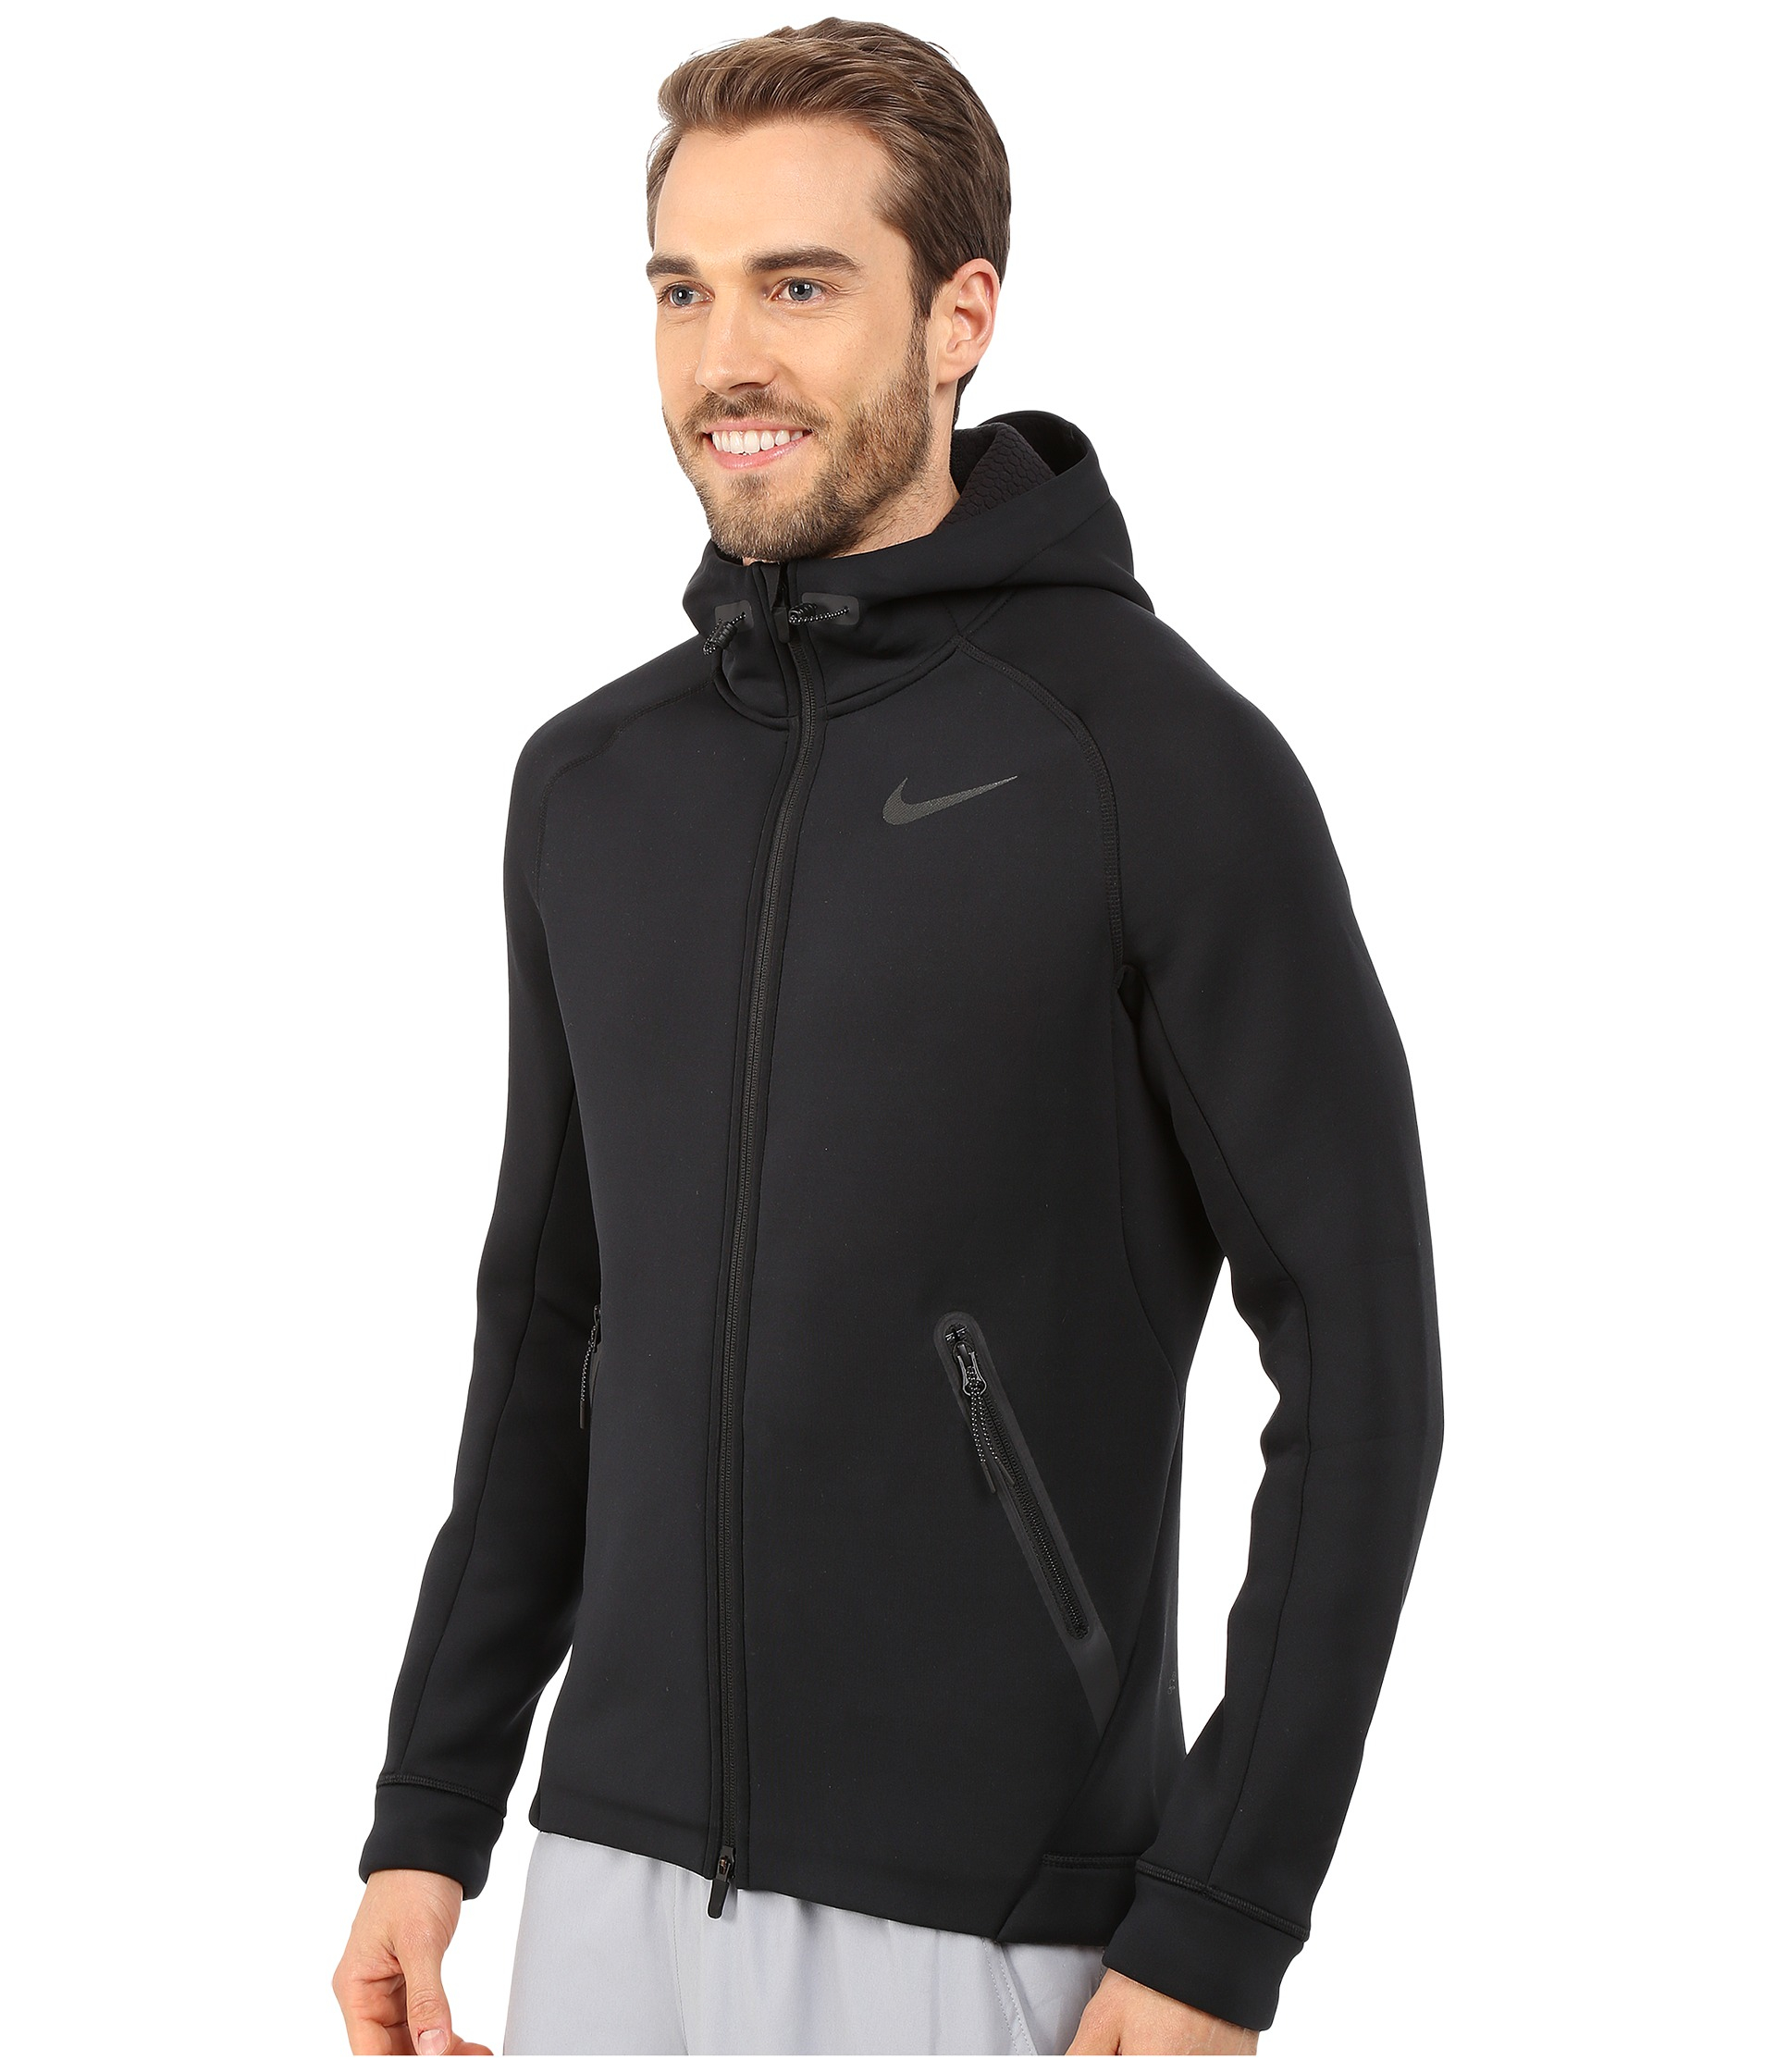 c44fe120 Nike Therma-sphere Max Training Jacket in Black for Men - Lyst